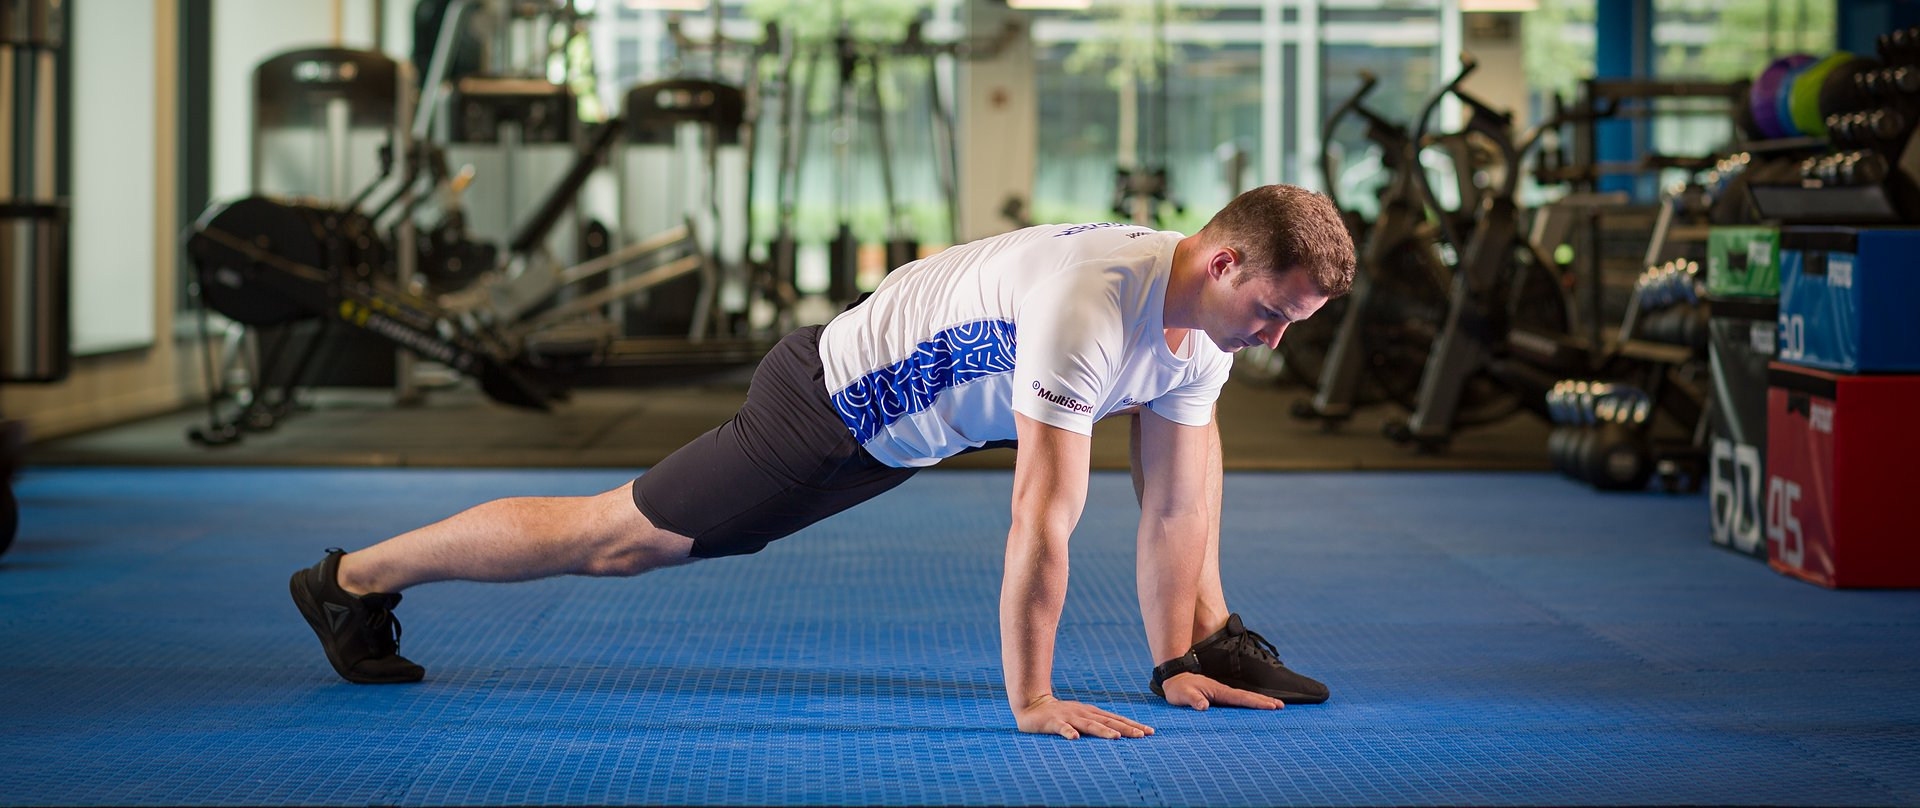 A sports trainer advises on how to safely return to physical activity after a break